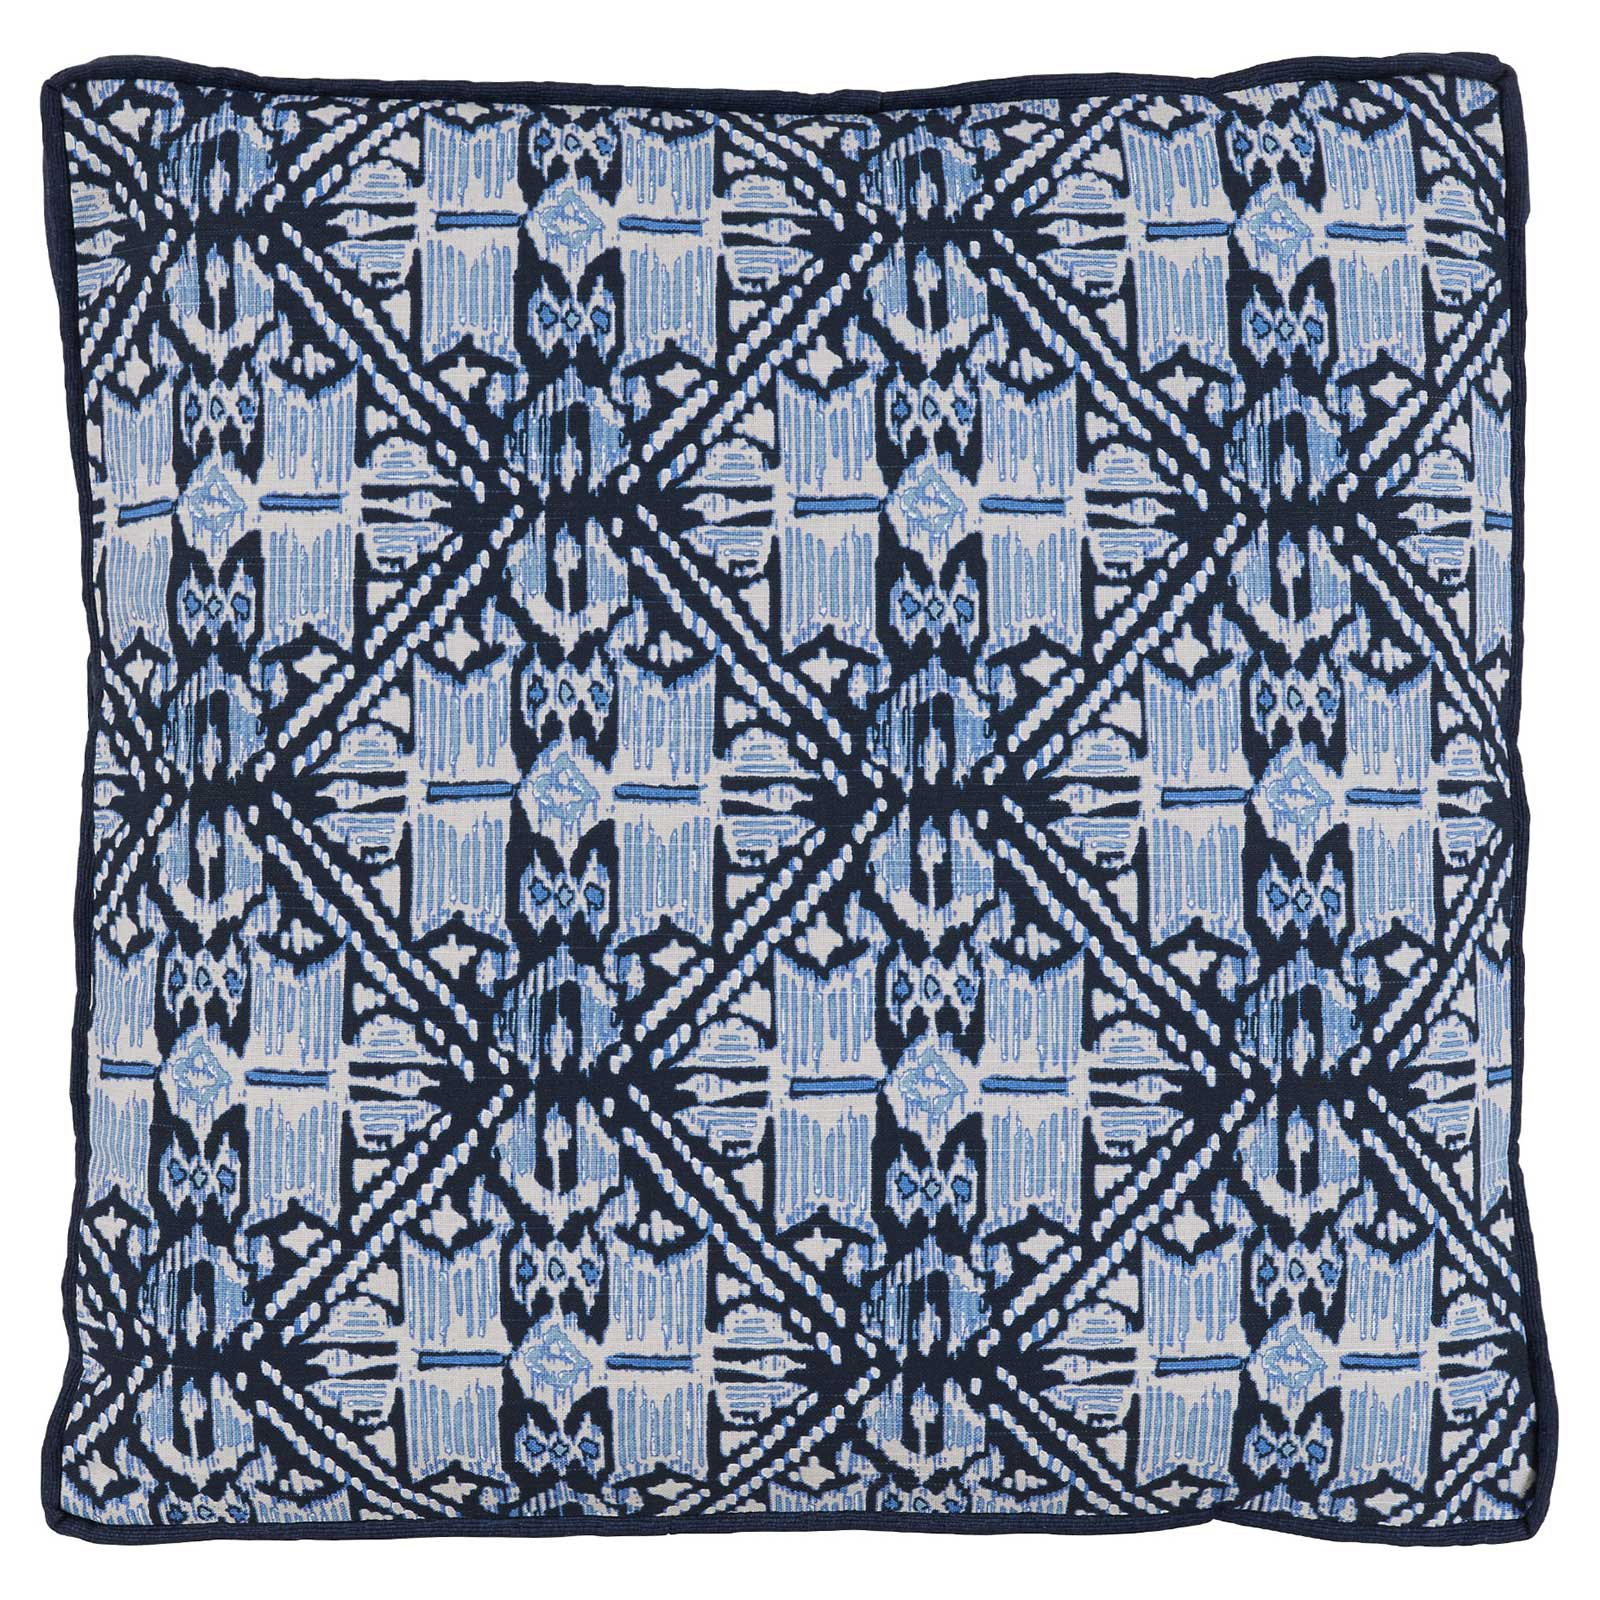 Anji Global Bazaar Rustic Blue Batik Prism Pillow - 22x22